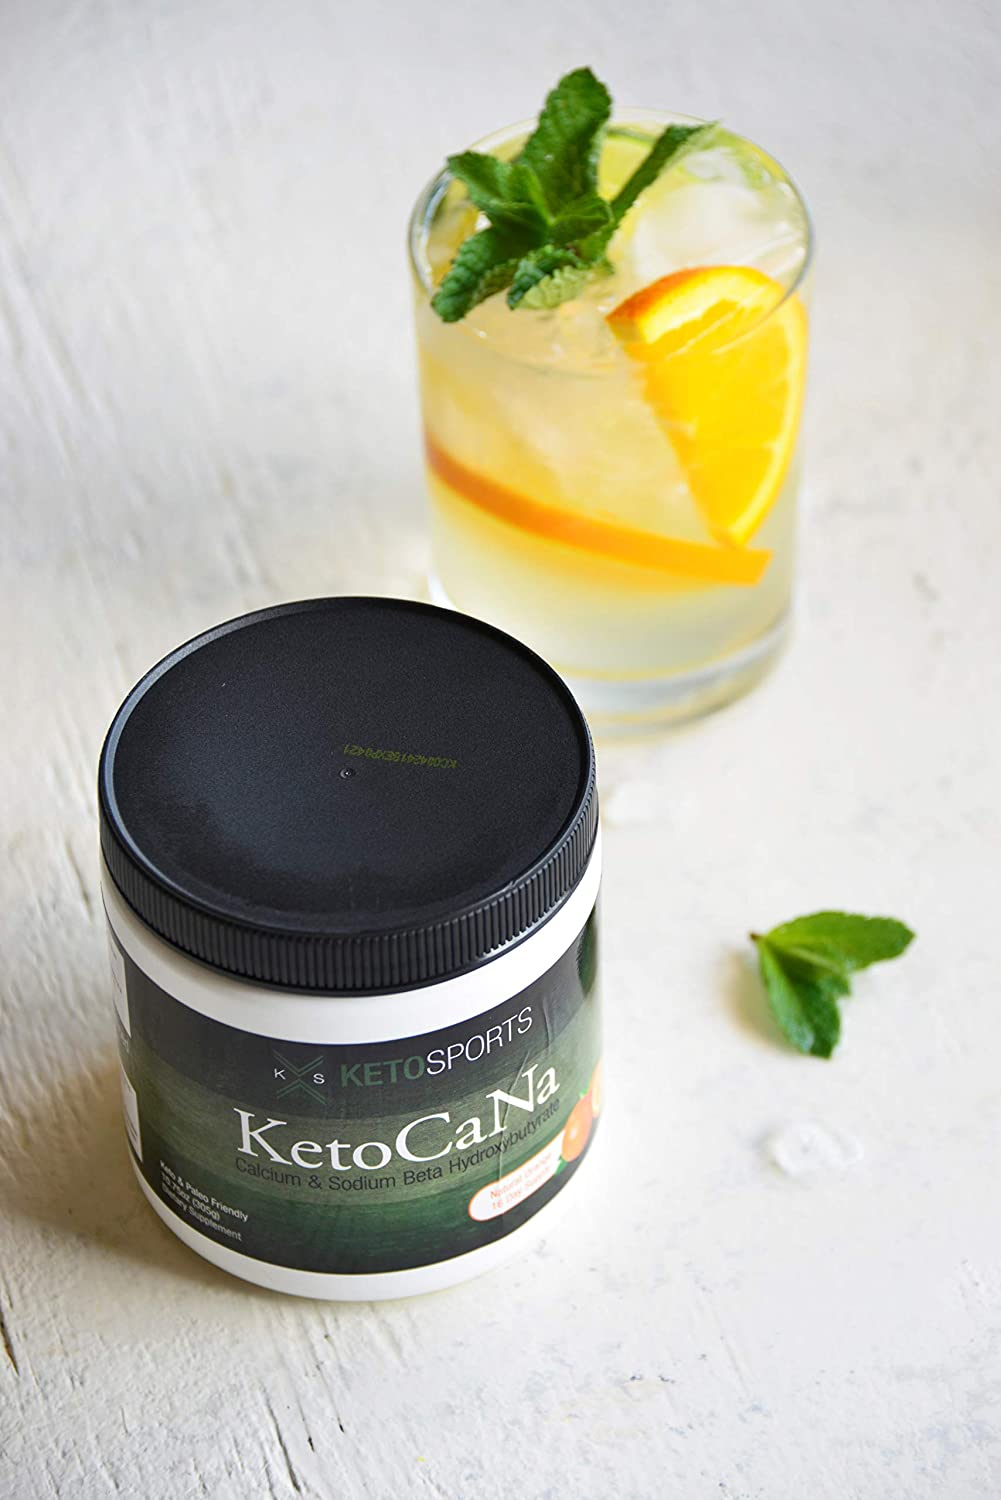 KetoCana How to drink it